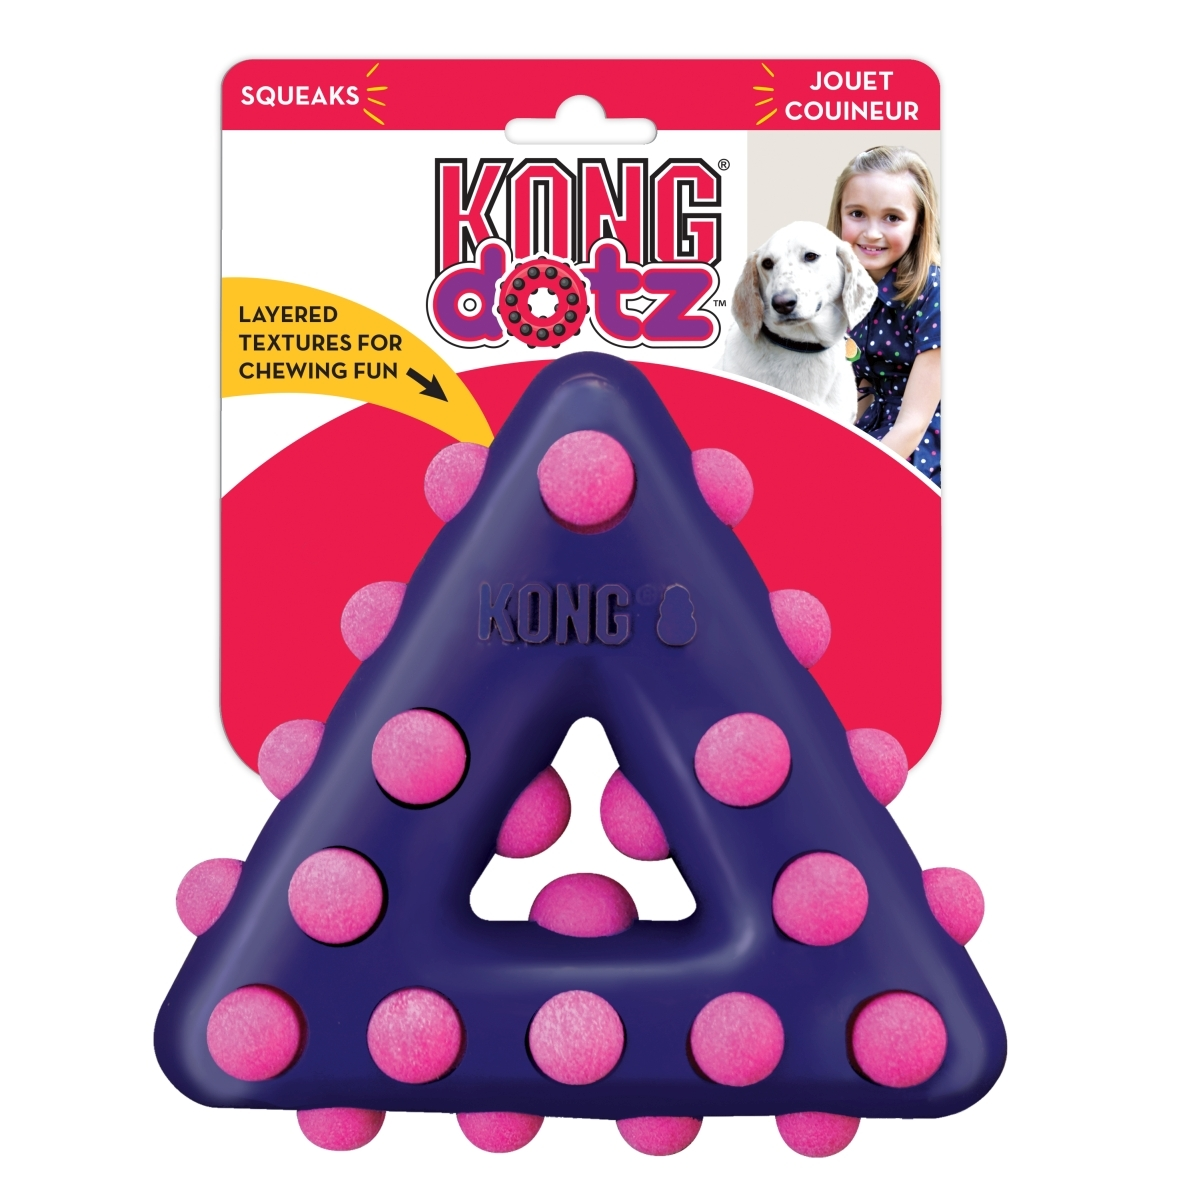 KO DOTZ TRIANGLE SMALL 00001